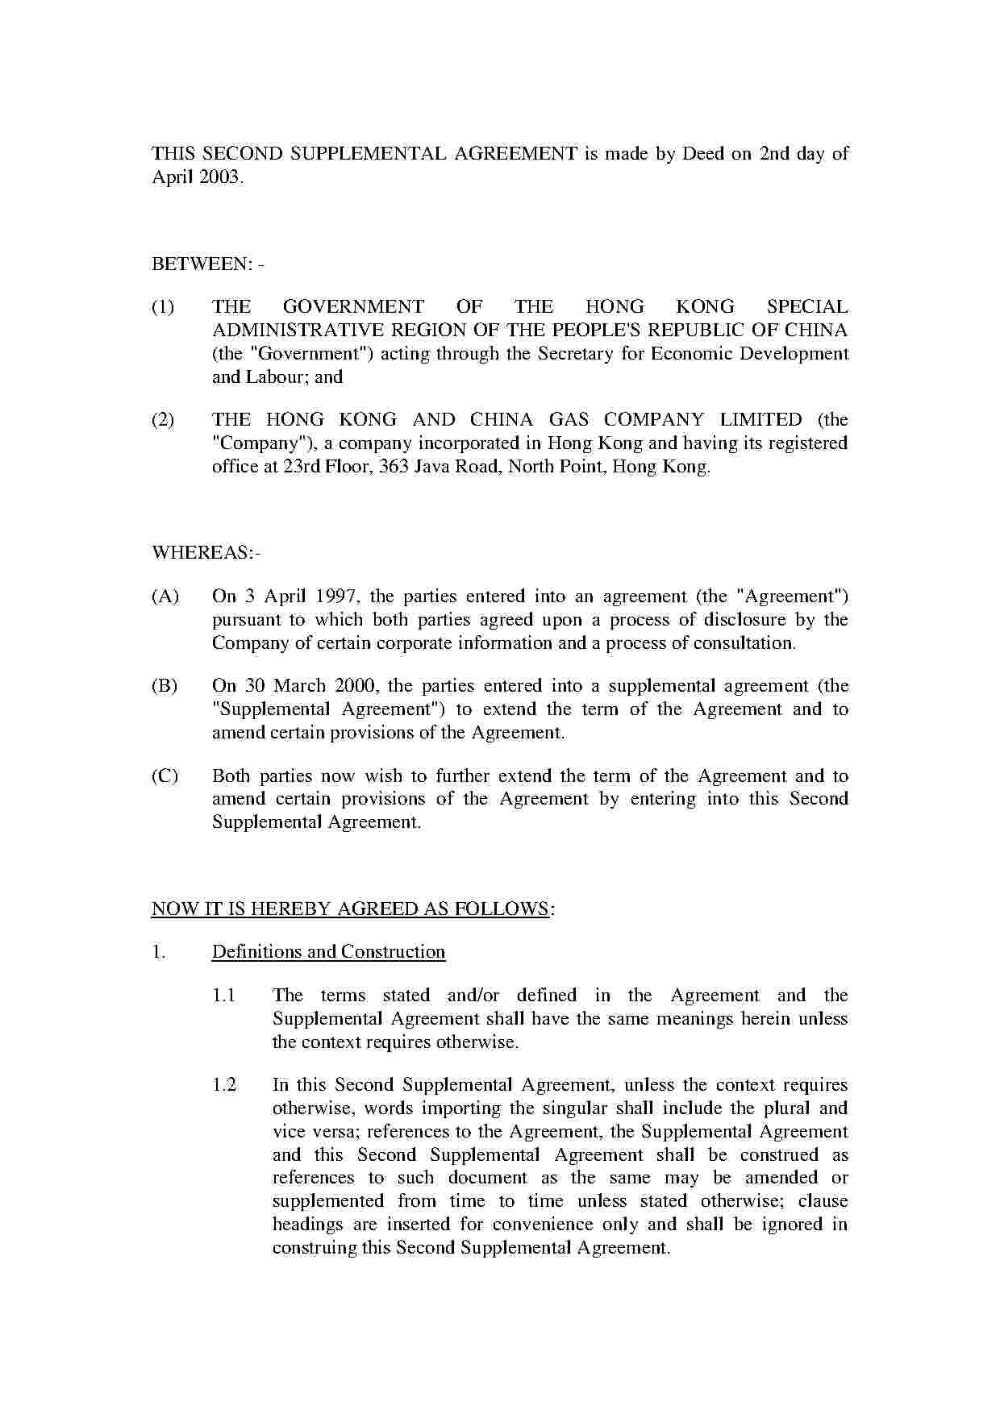 Download Contract Extension Agreement Style Template For